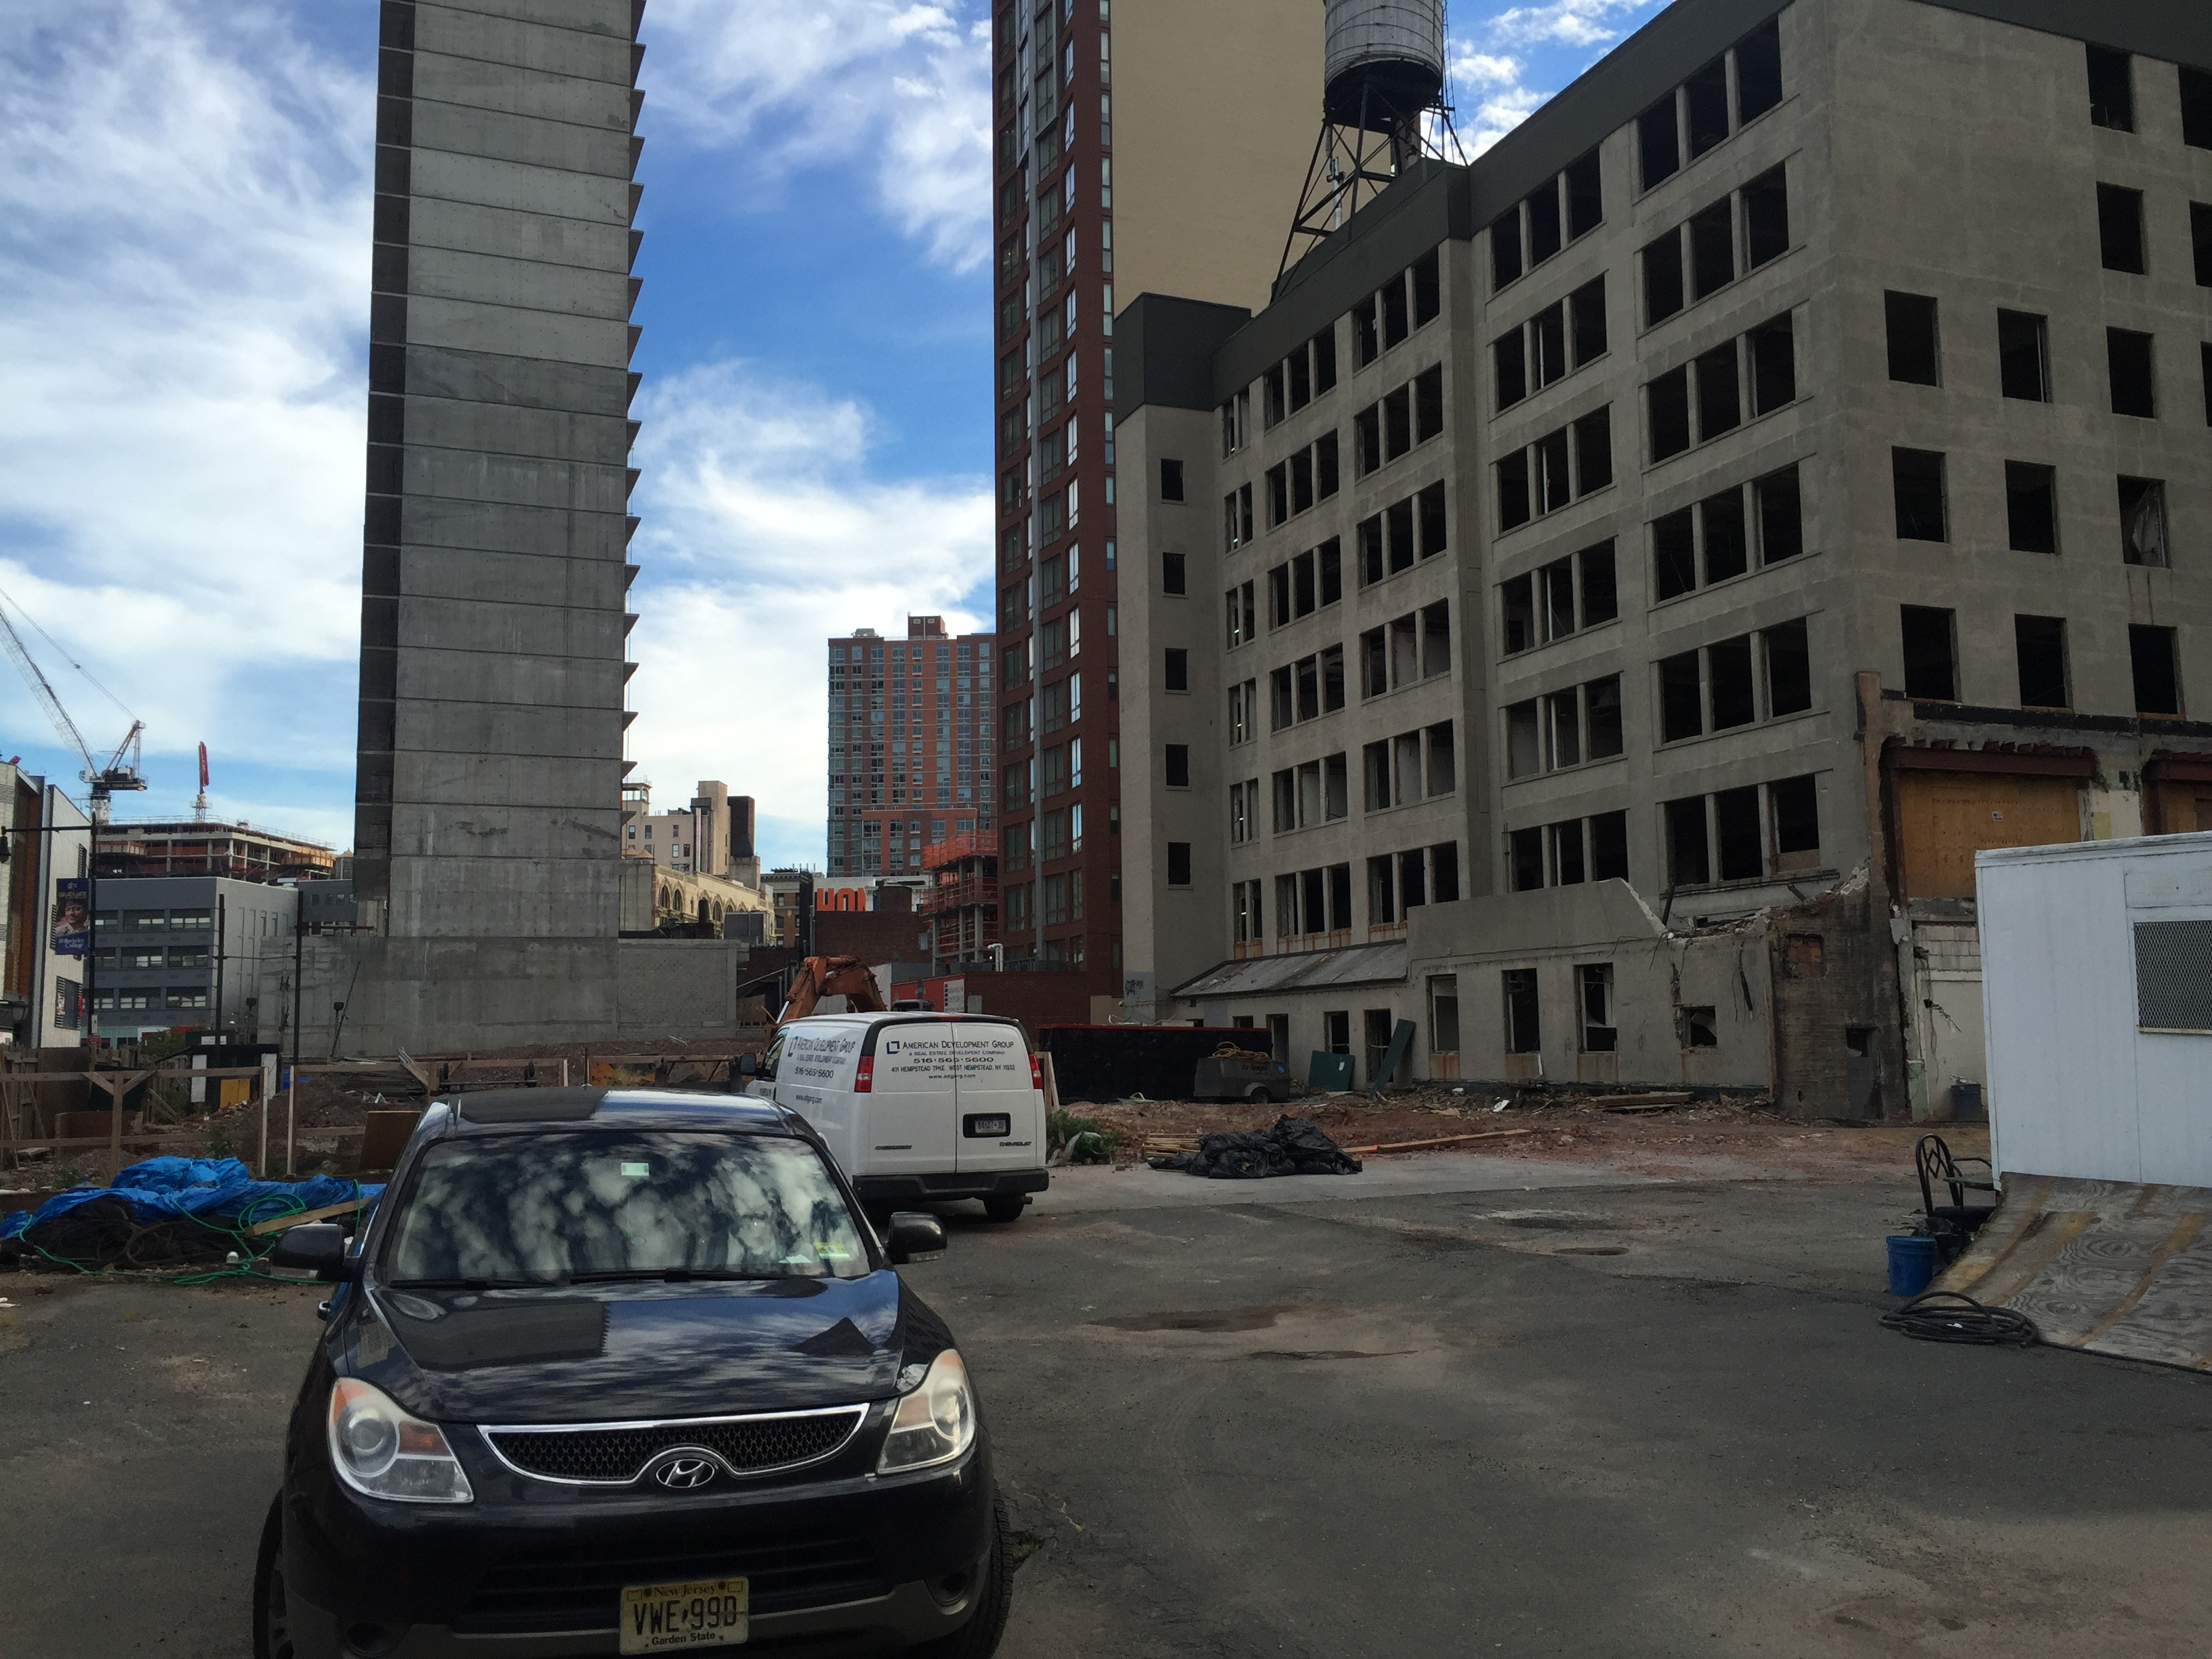 The future Willoughby Square site on Albee Square/Gold Street